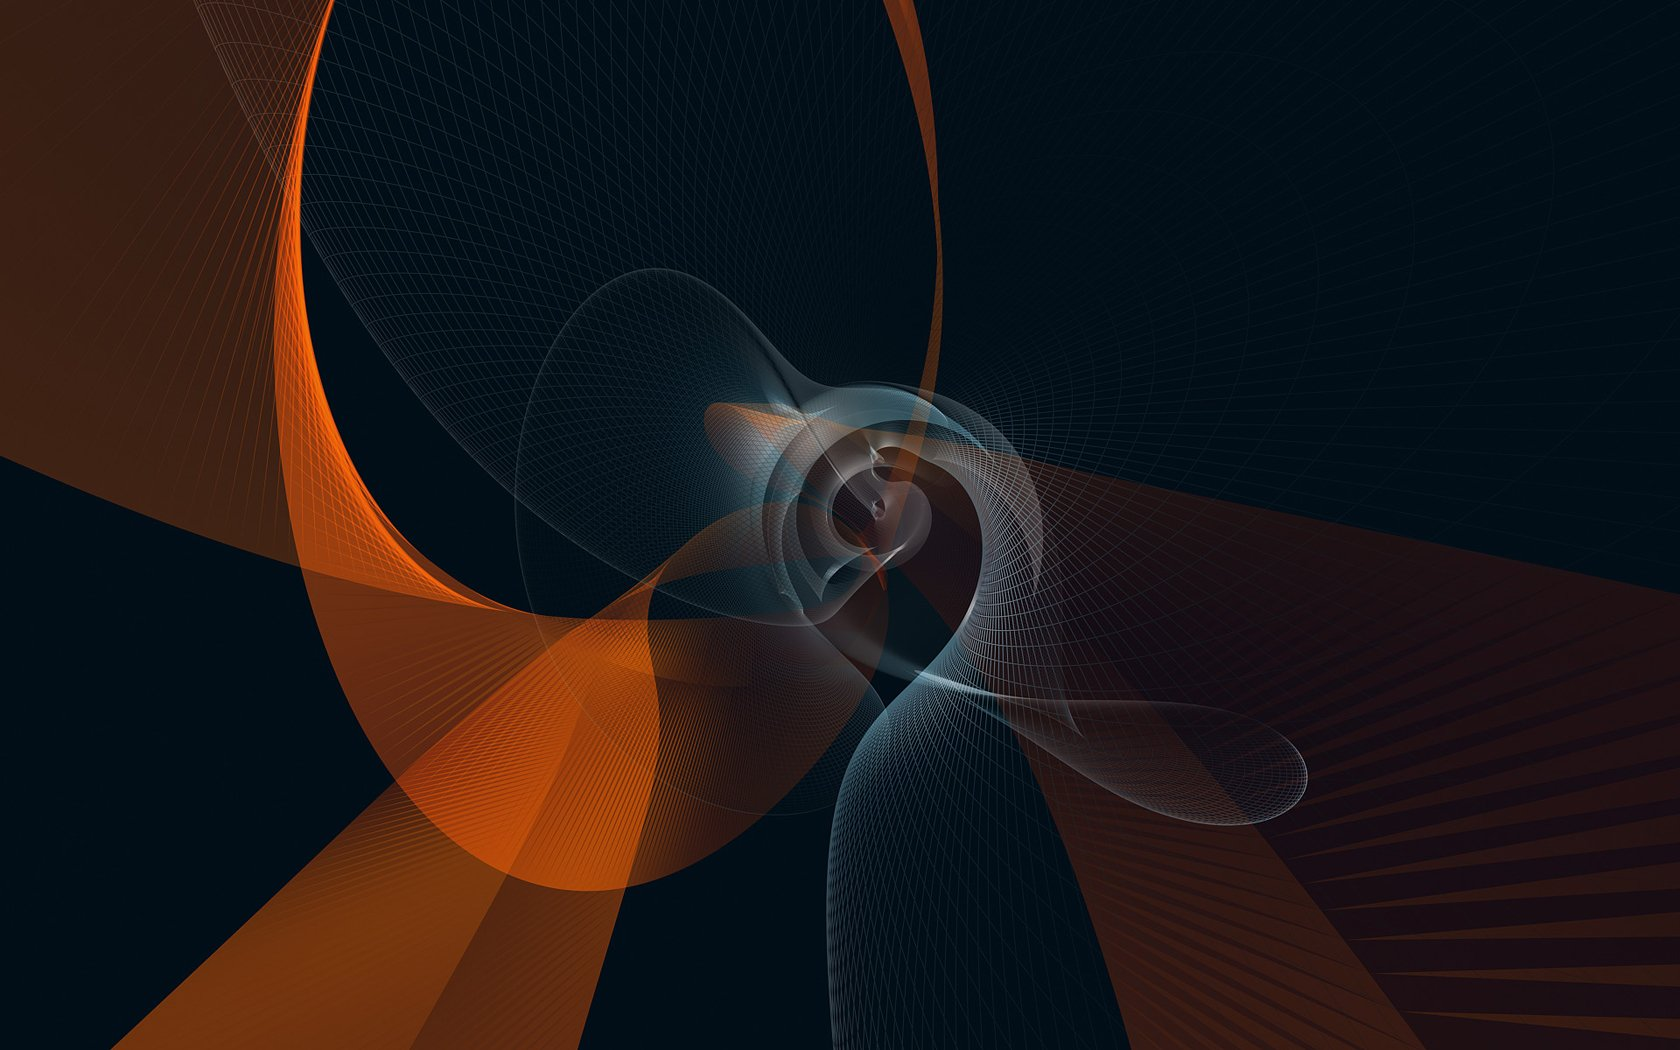 Abstract - Blue  Abstract Alien Landscape Pattern Shapes Colors Texture Apophysis Fractal CGI Artistic Fantasy Sci Fi Space Wallpaper